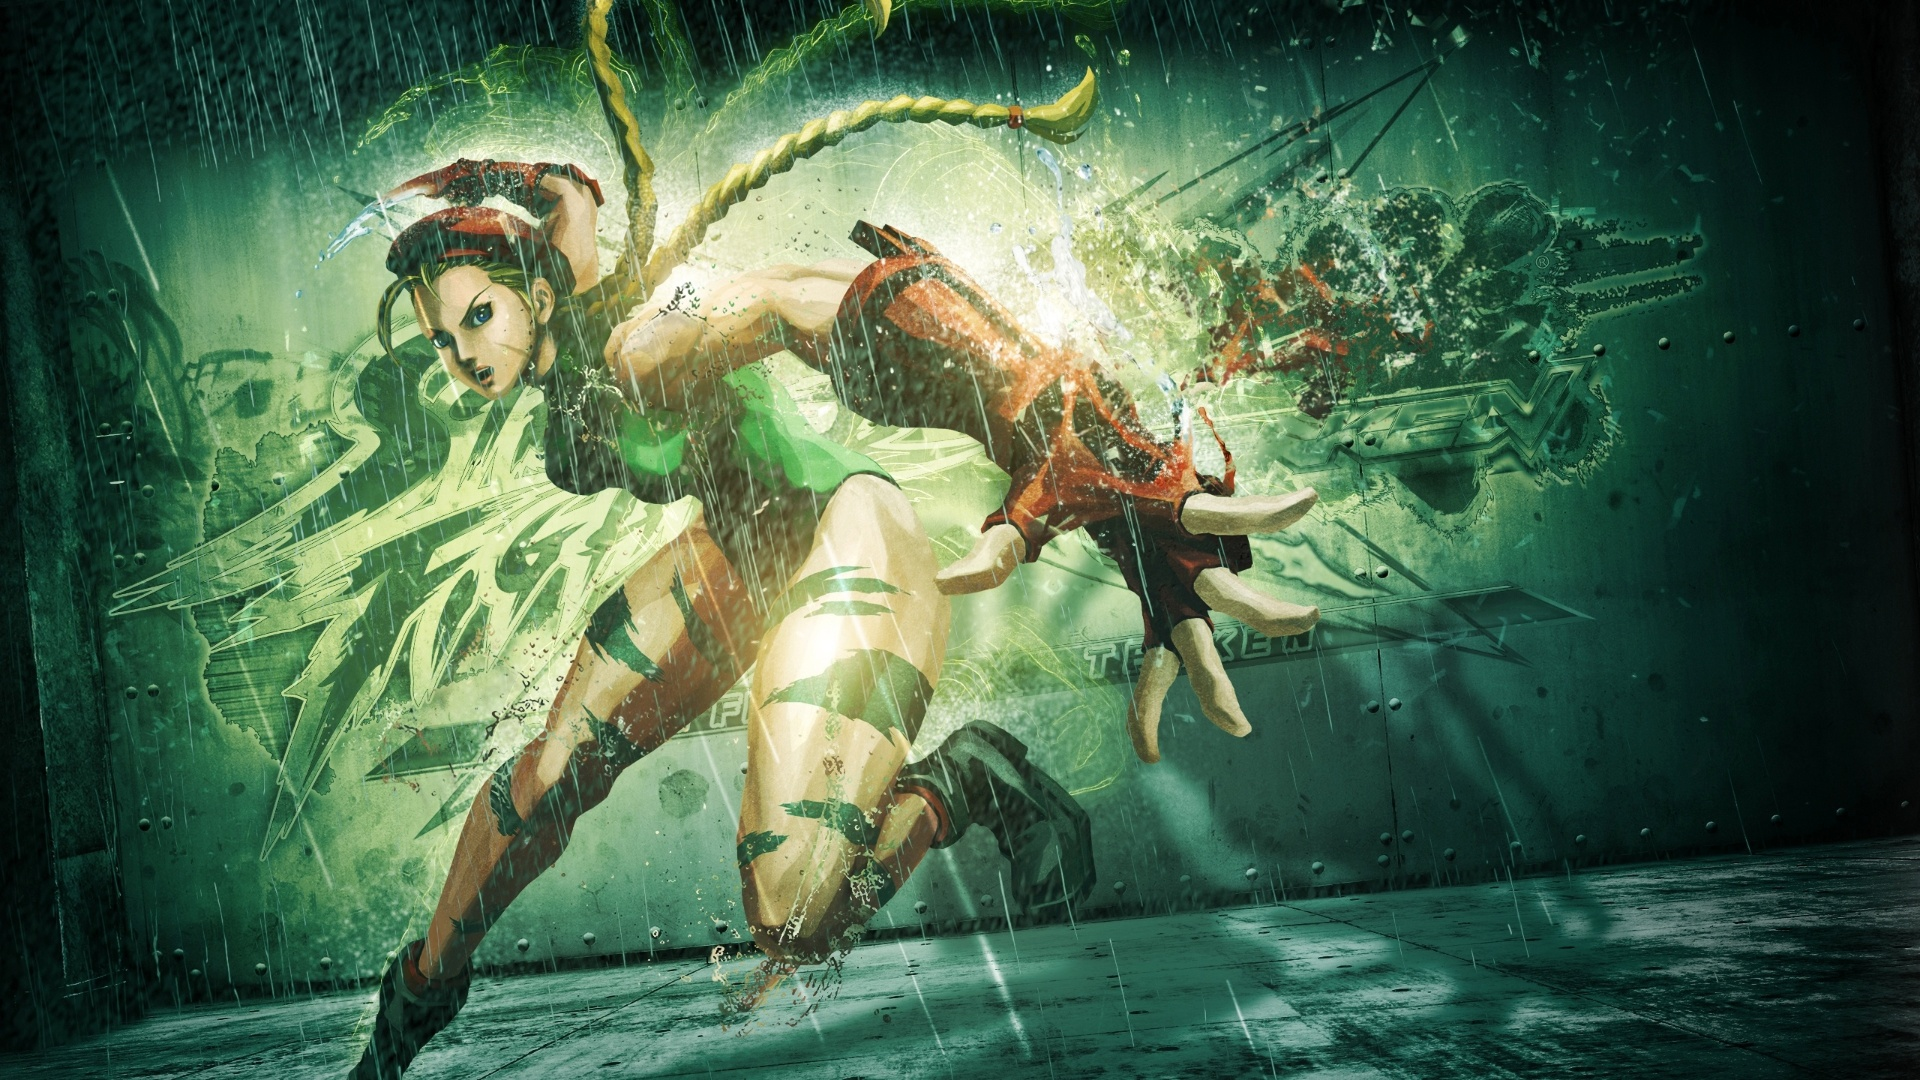 Street Fighter Wallpaper Image Picture